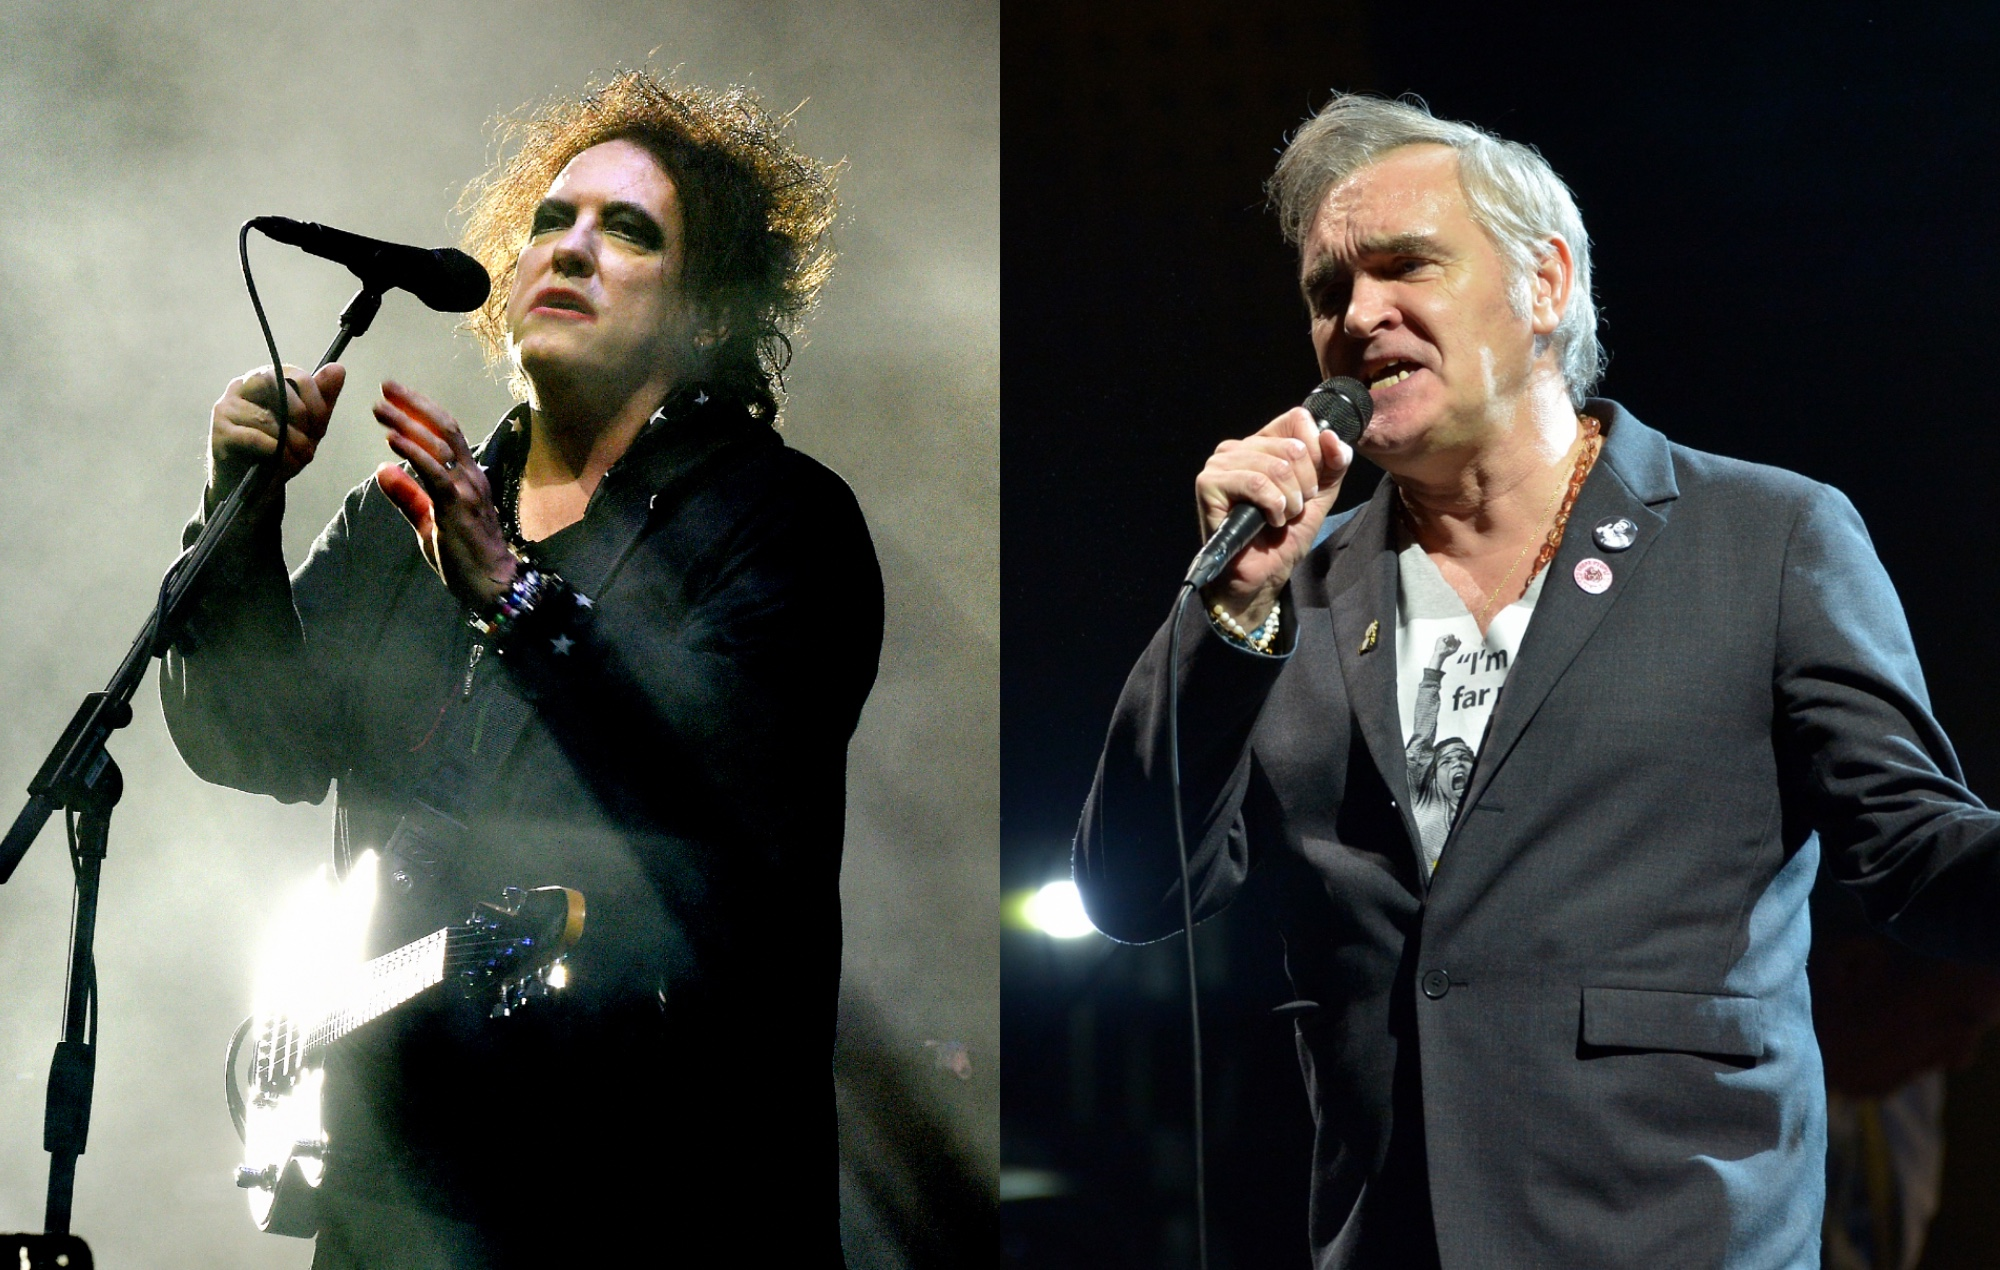 """The Cure's Robert Smith has addressed an ongoing """"imaginary feud"""" with Morrisey of The Smiths"""